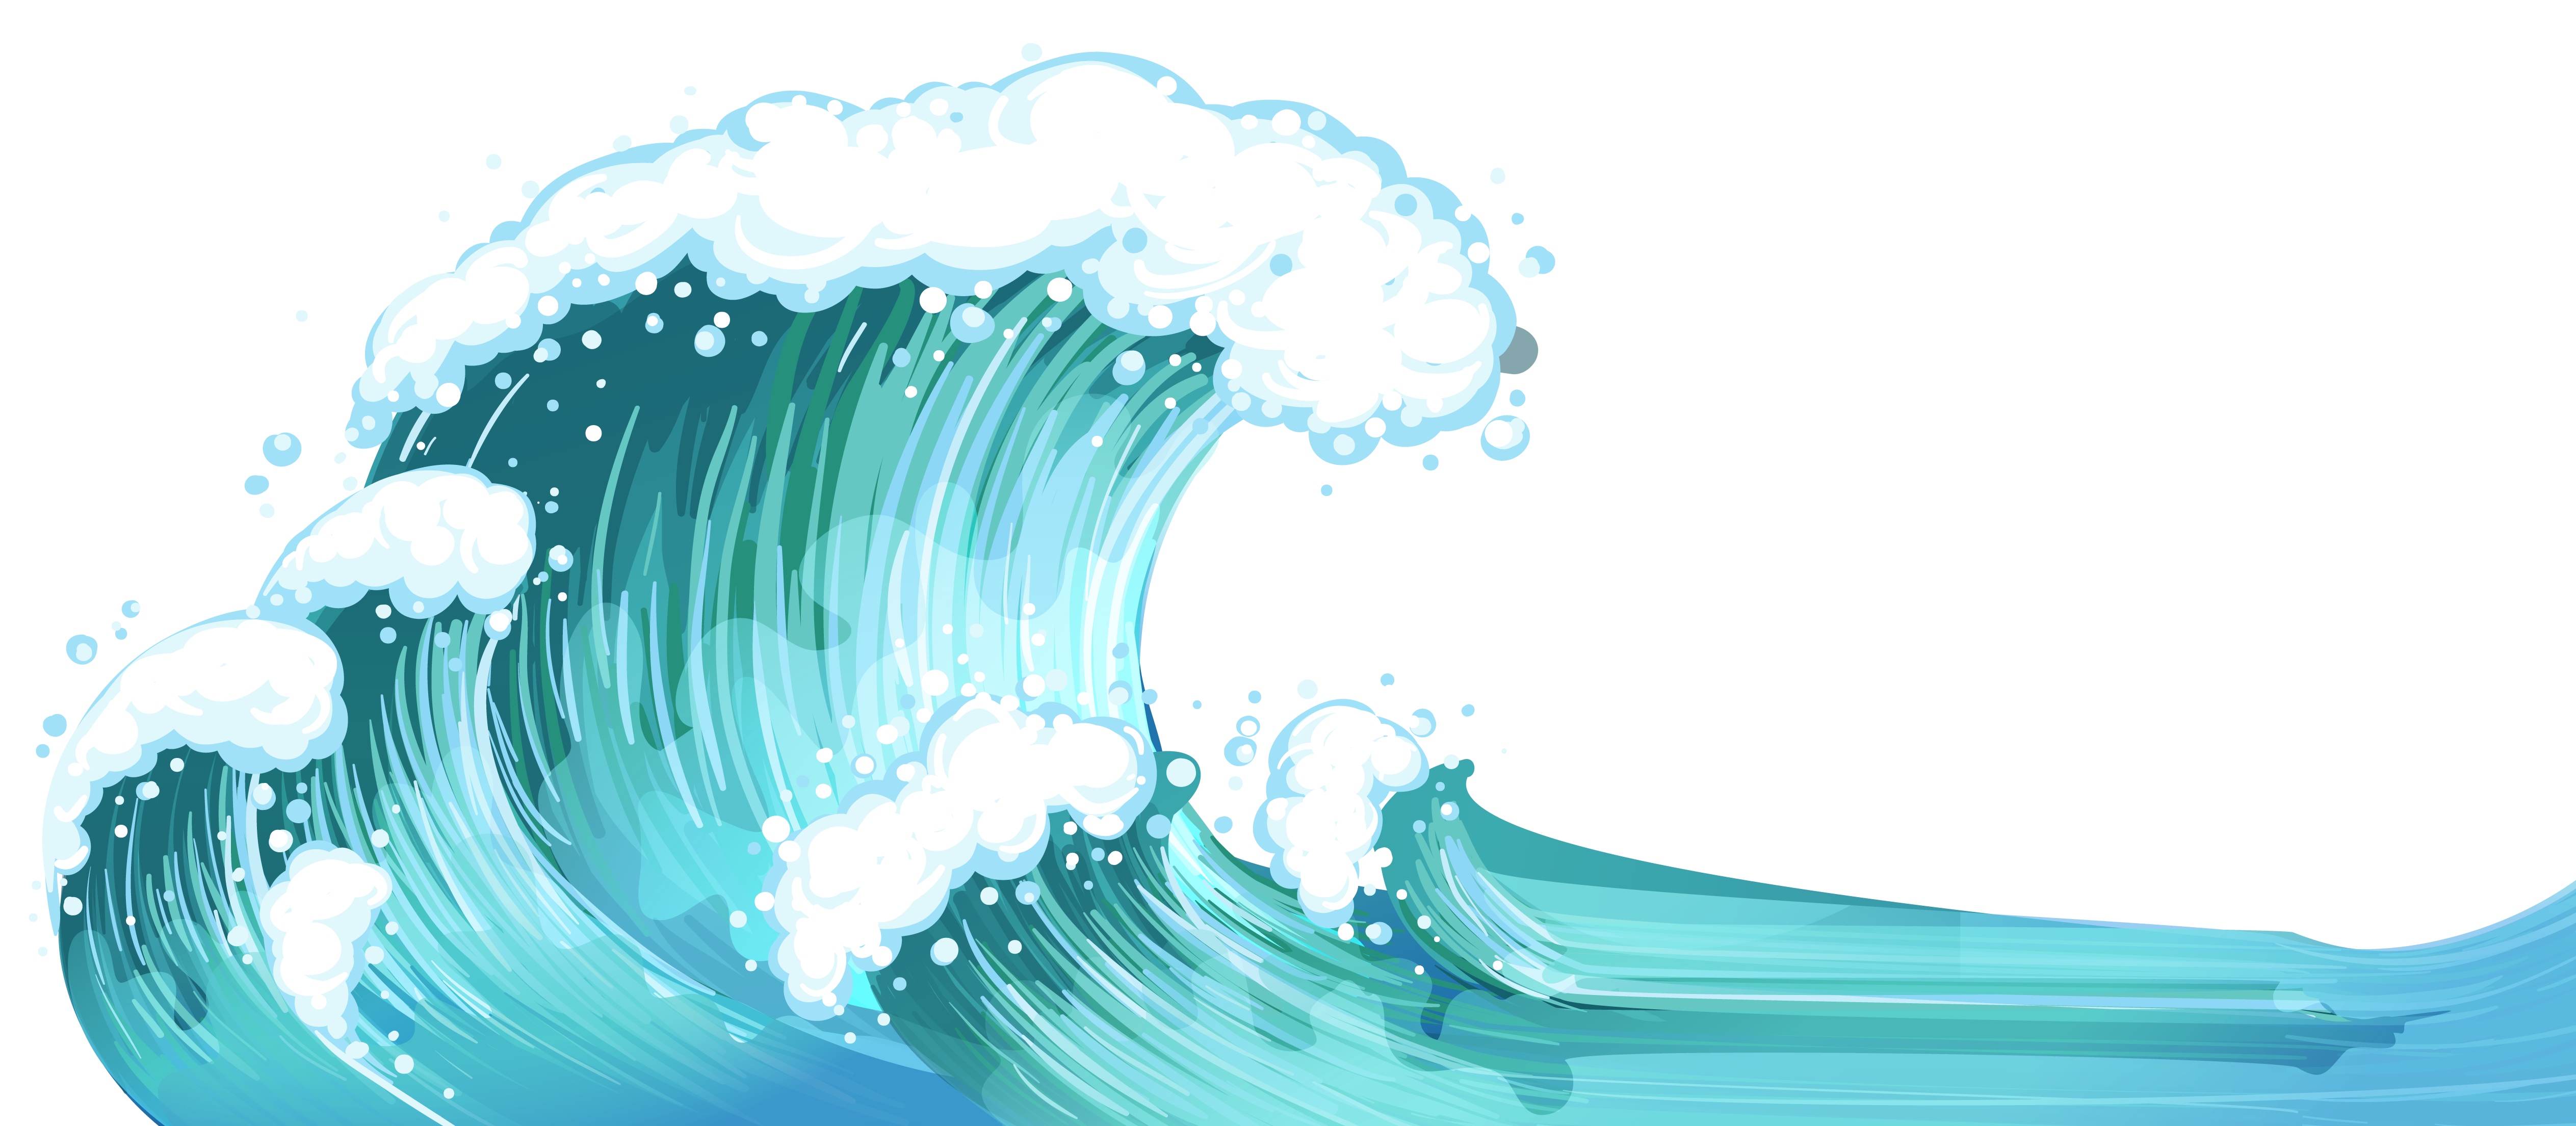 Waves clipart png image Free Waves Cliparts Transparent, Download Free Clip Art, Free Clip ... image